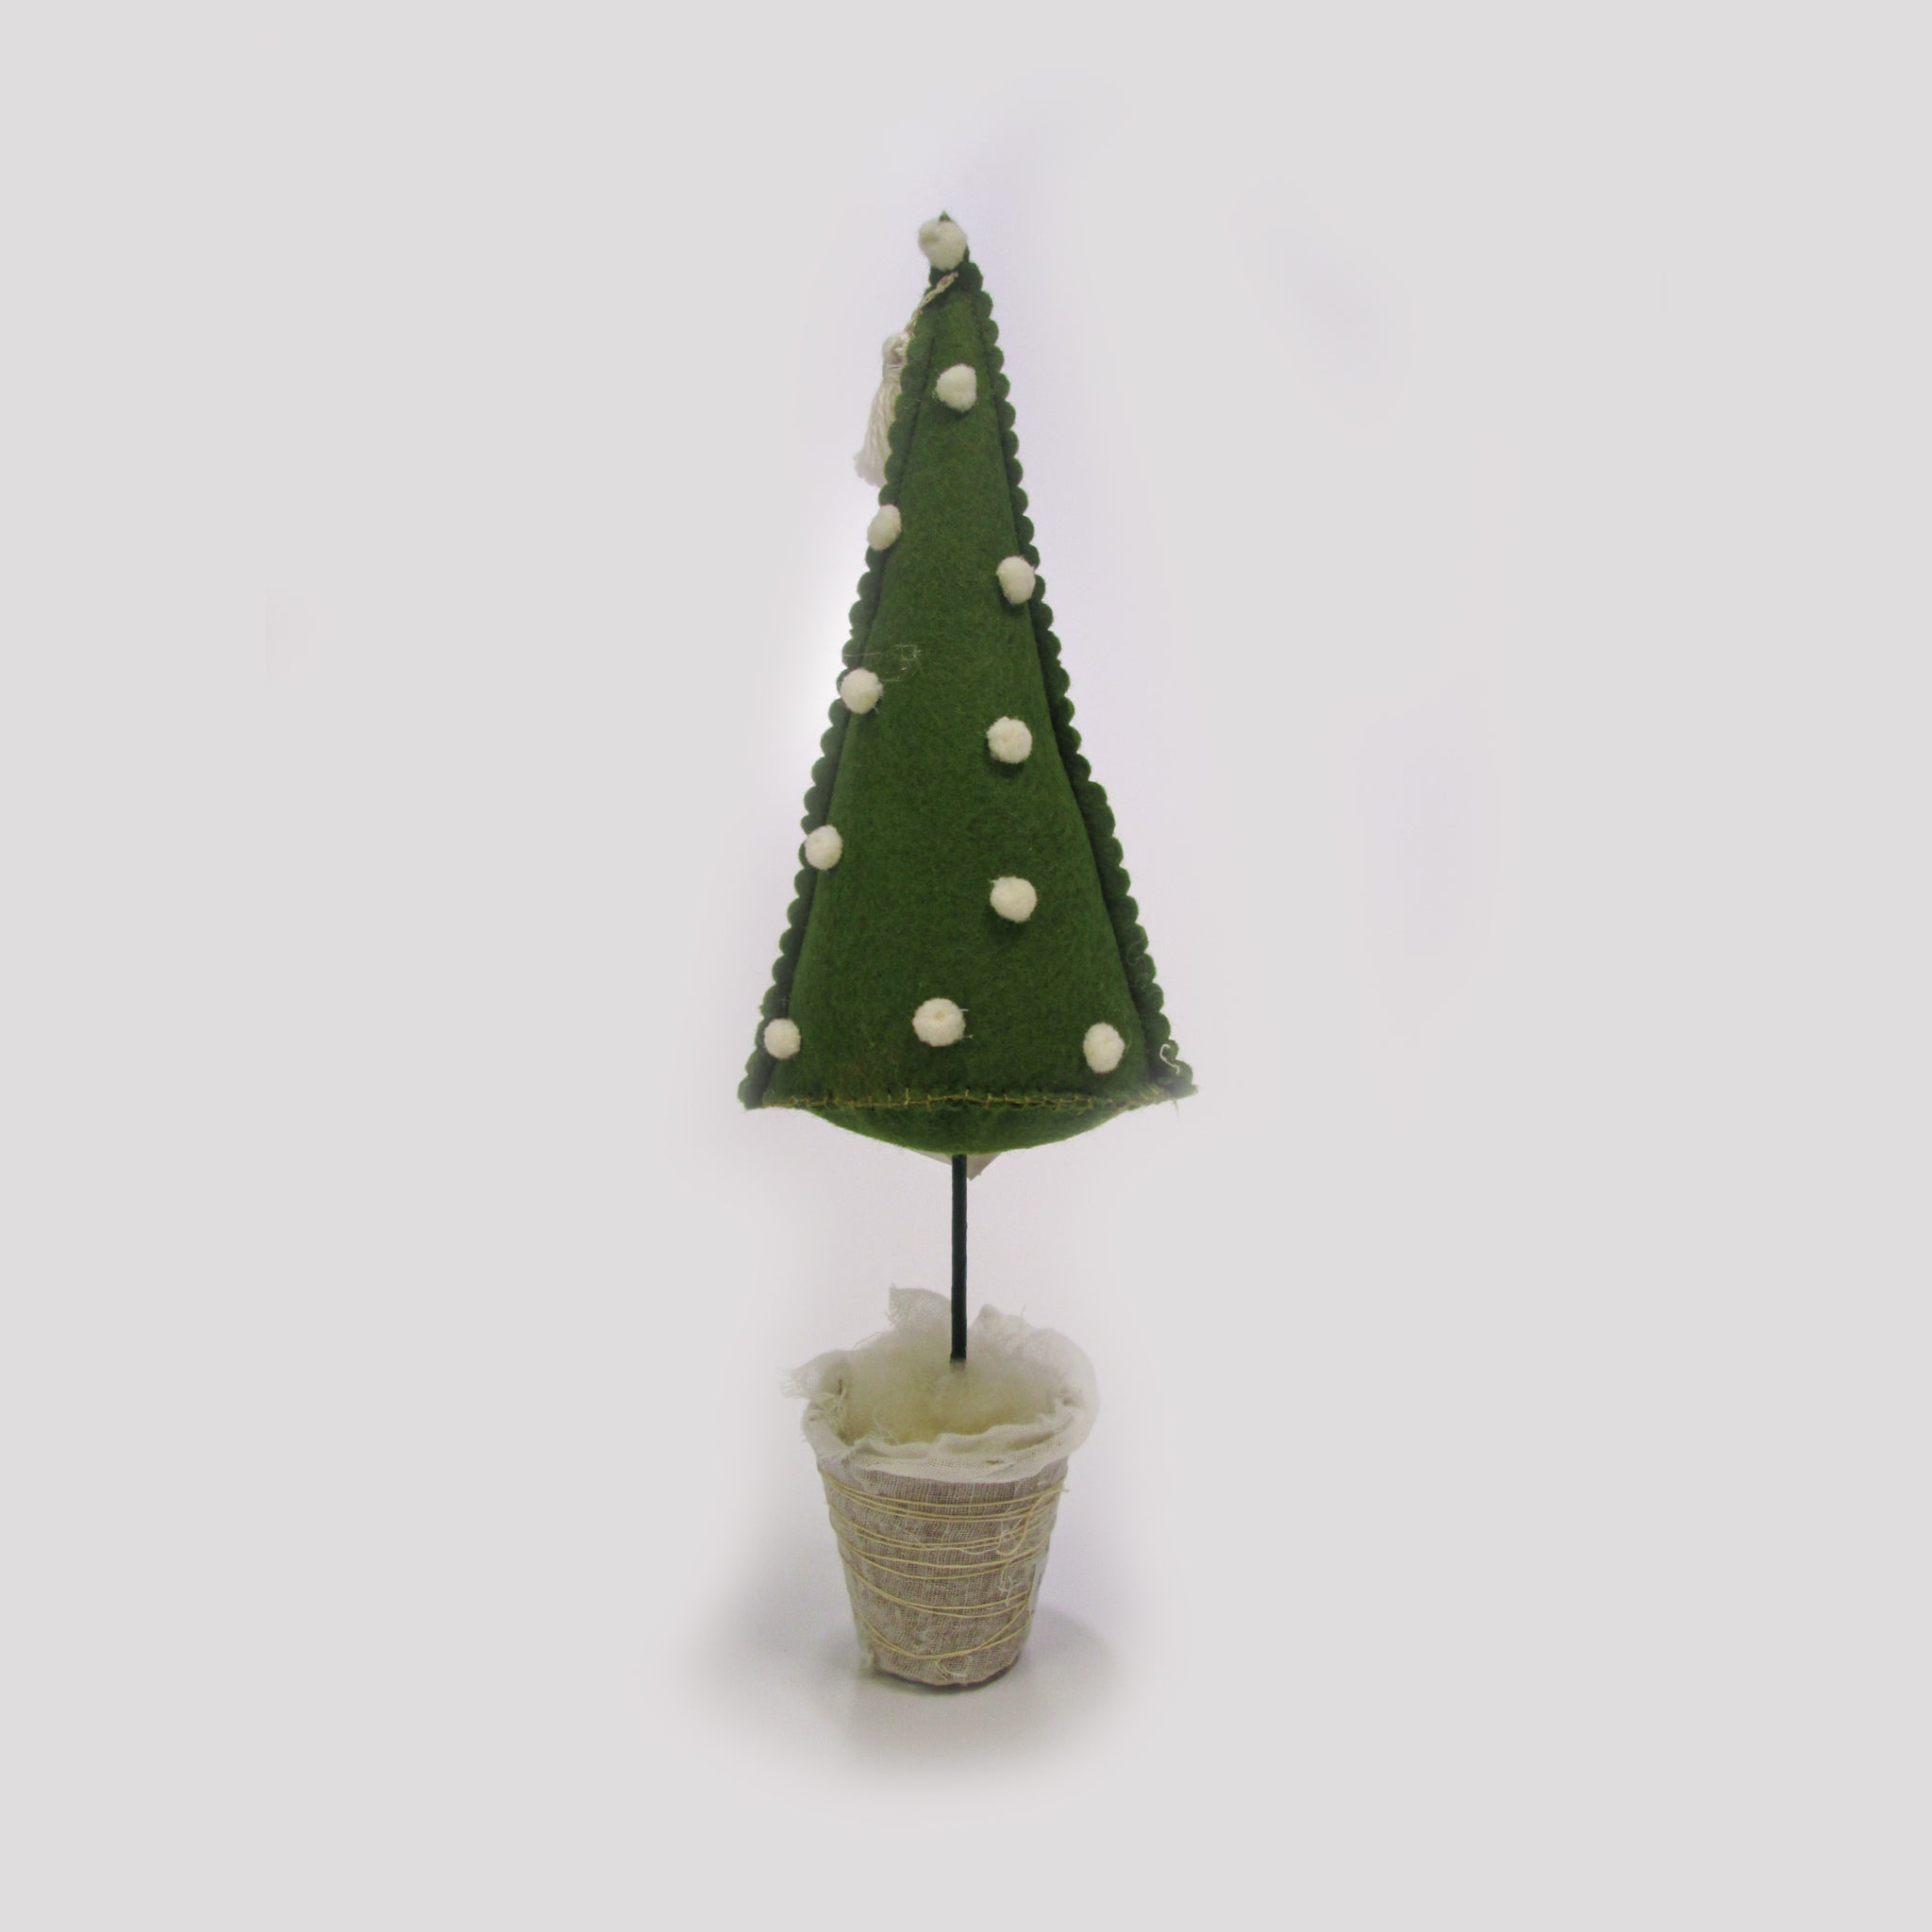 Hutch Studio - PomPom Tree - Limited Edition Handmade Tree